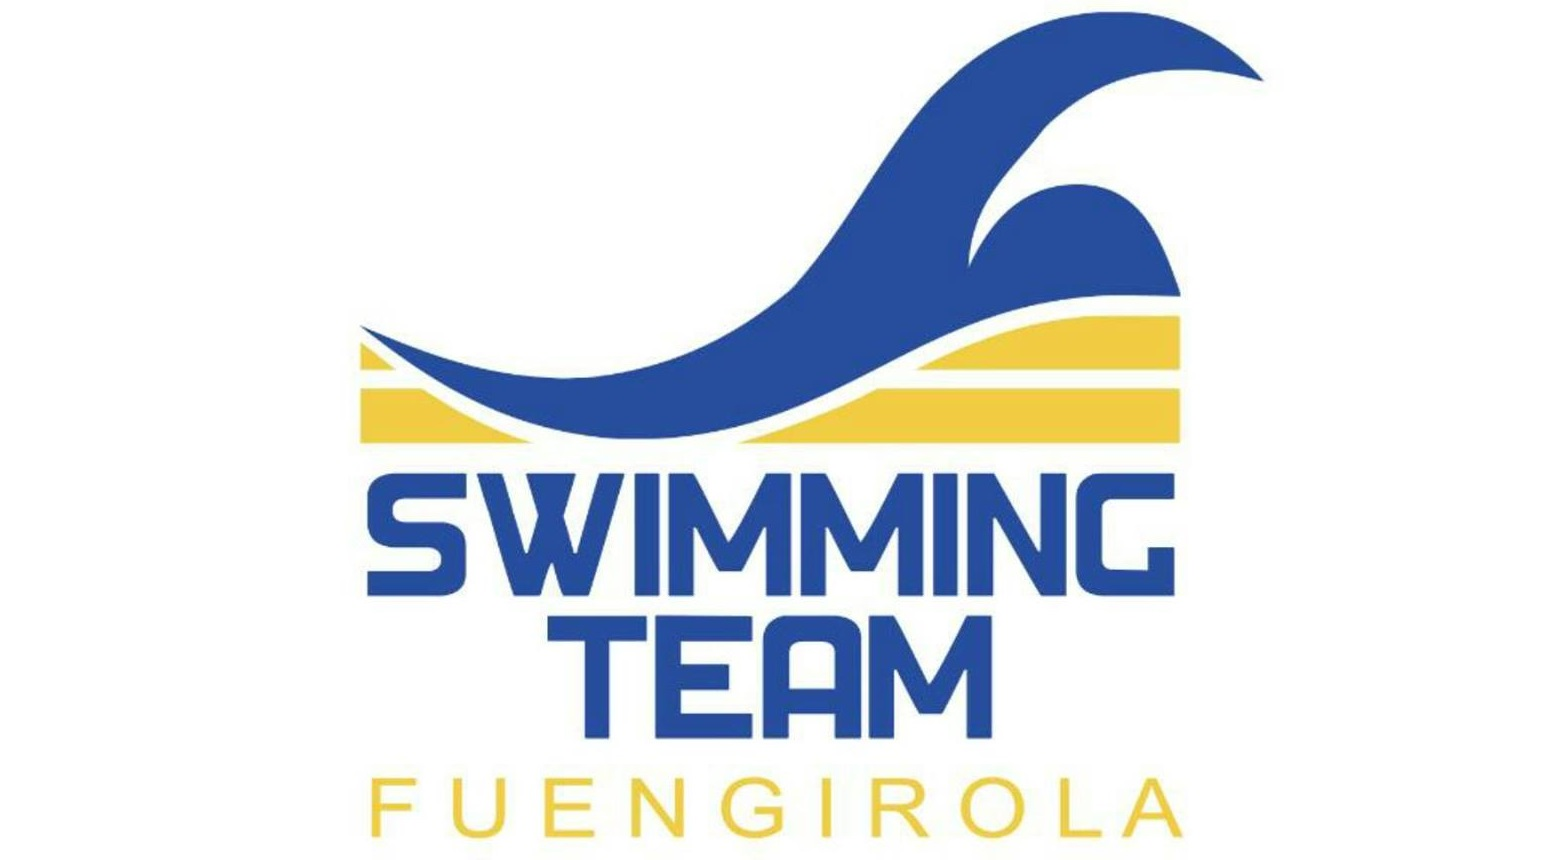 CN. Fuengirola Swimming Team